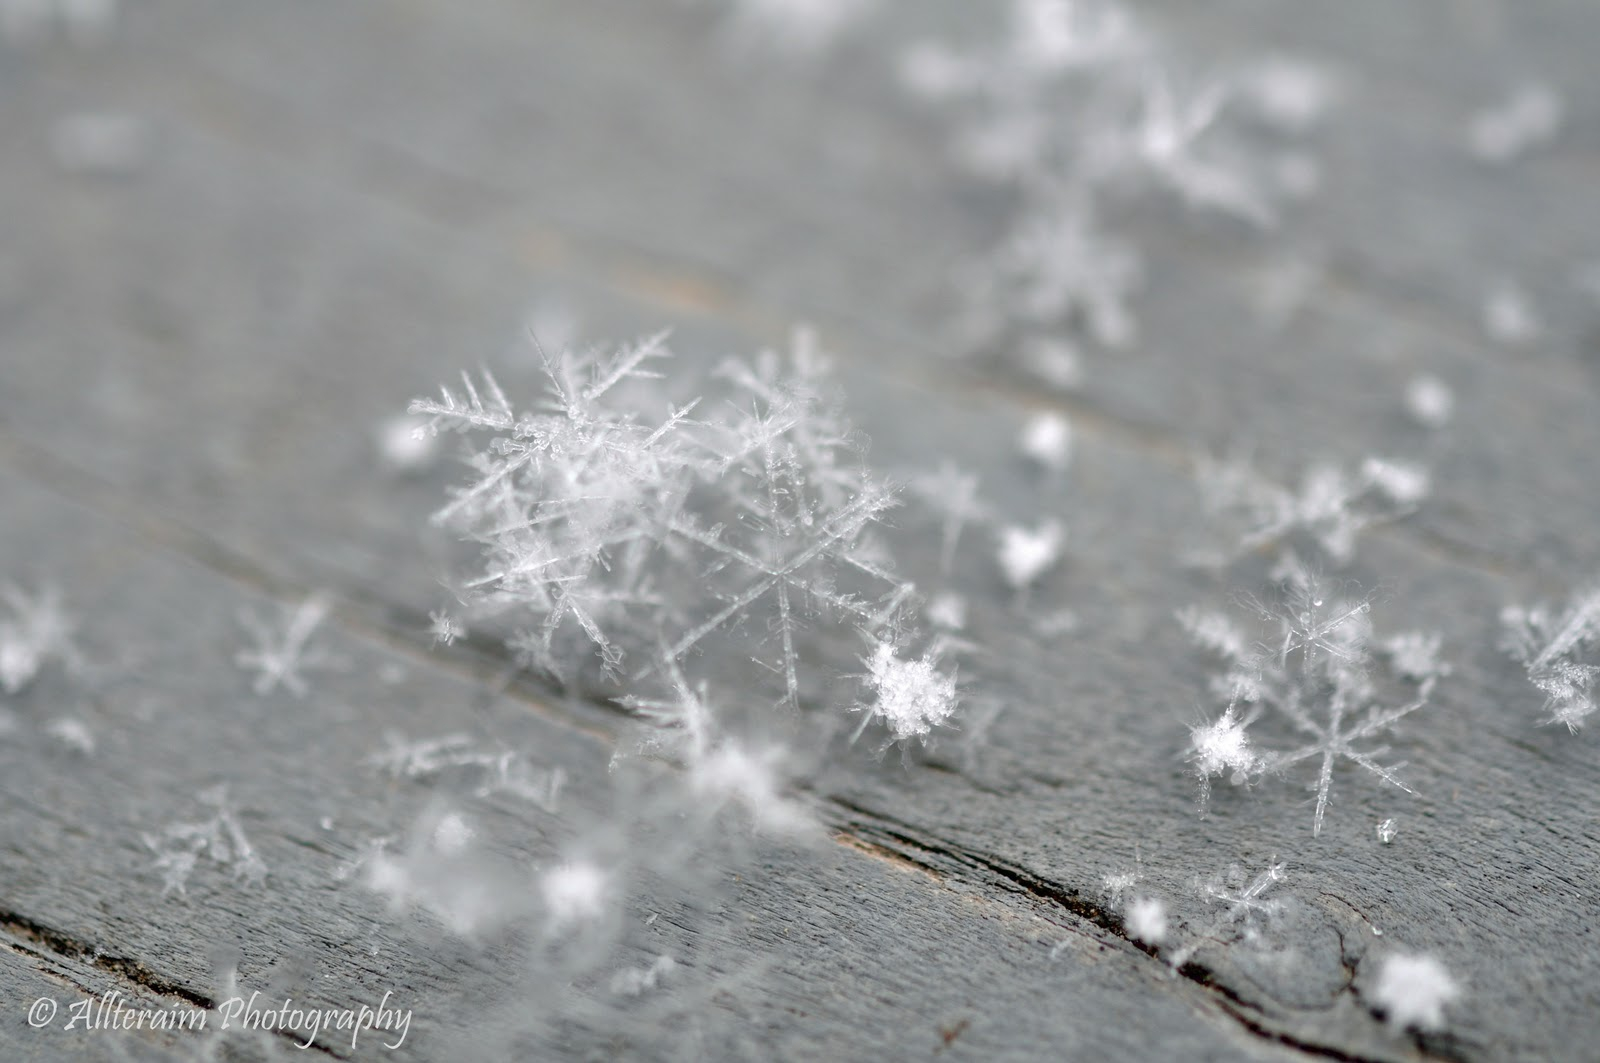 Speakin' of the Weather: The Anatomy of a Snowflake